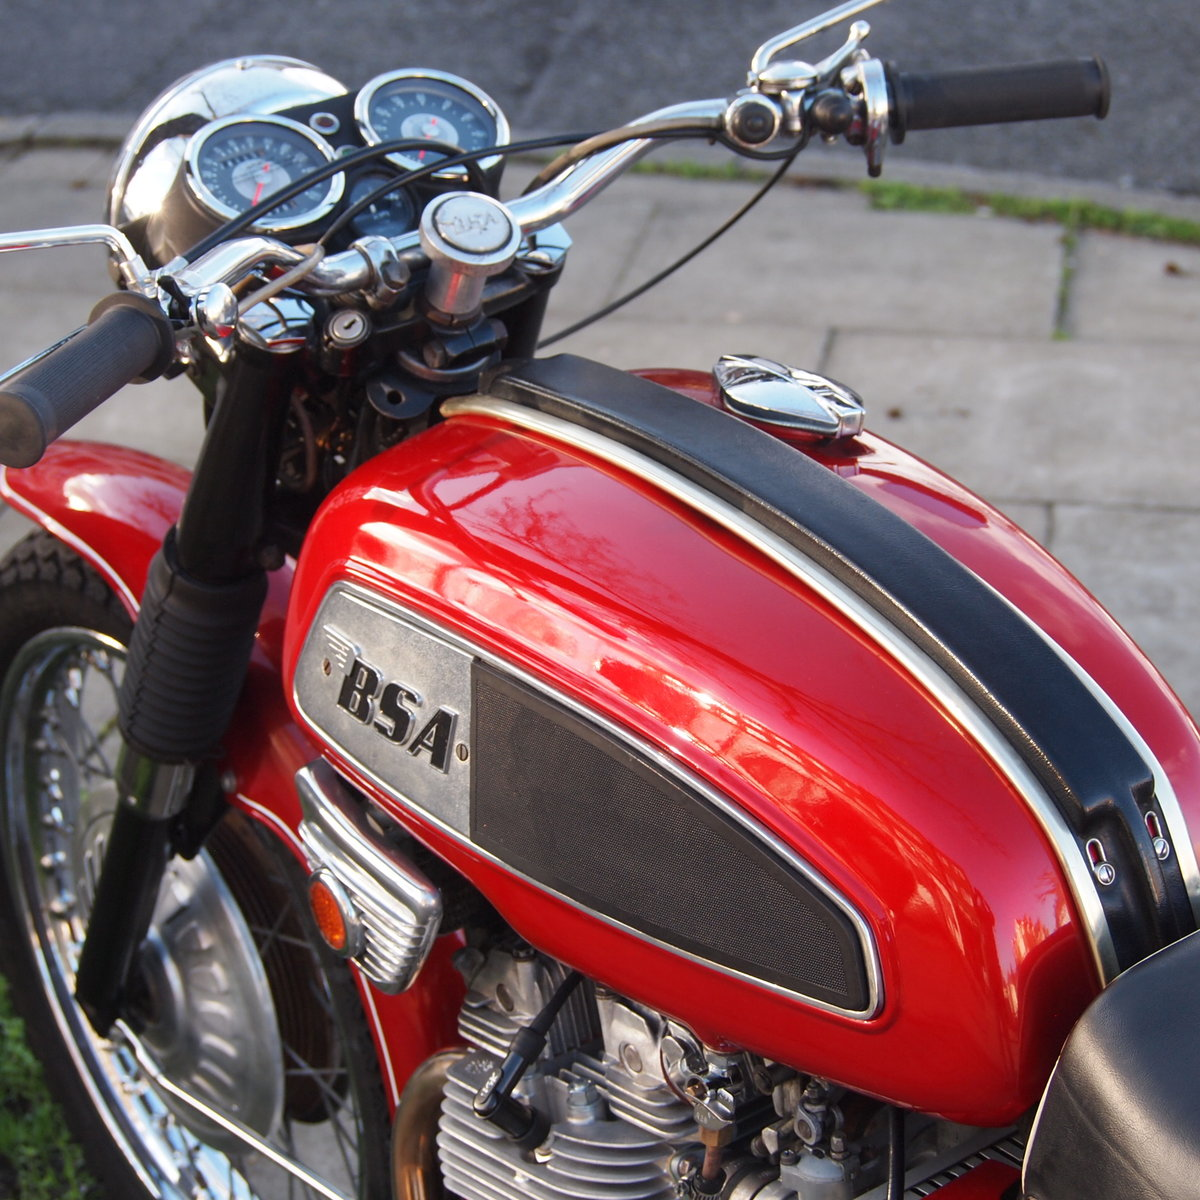 1969 BSA Rocket 3 with Electric Start, Early 1968 Model. For Sale (picture 3 of 6)